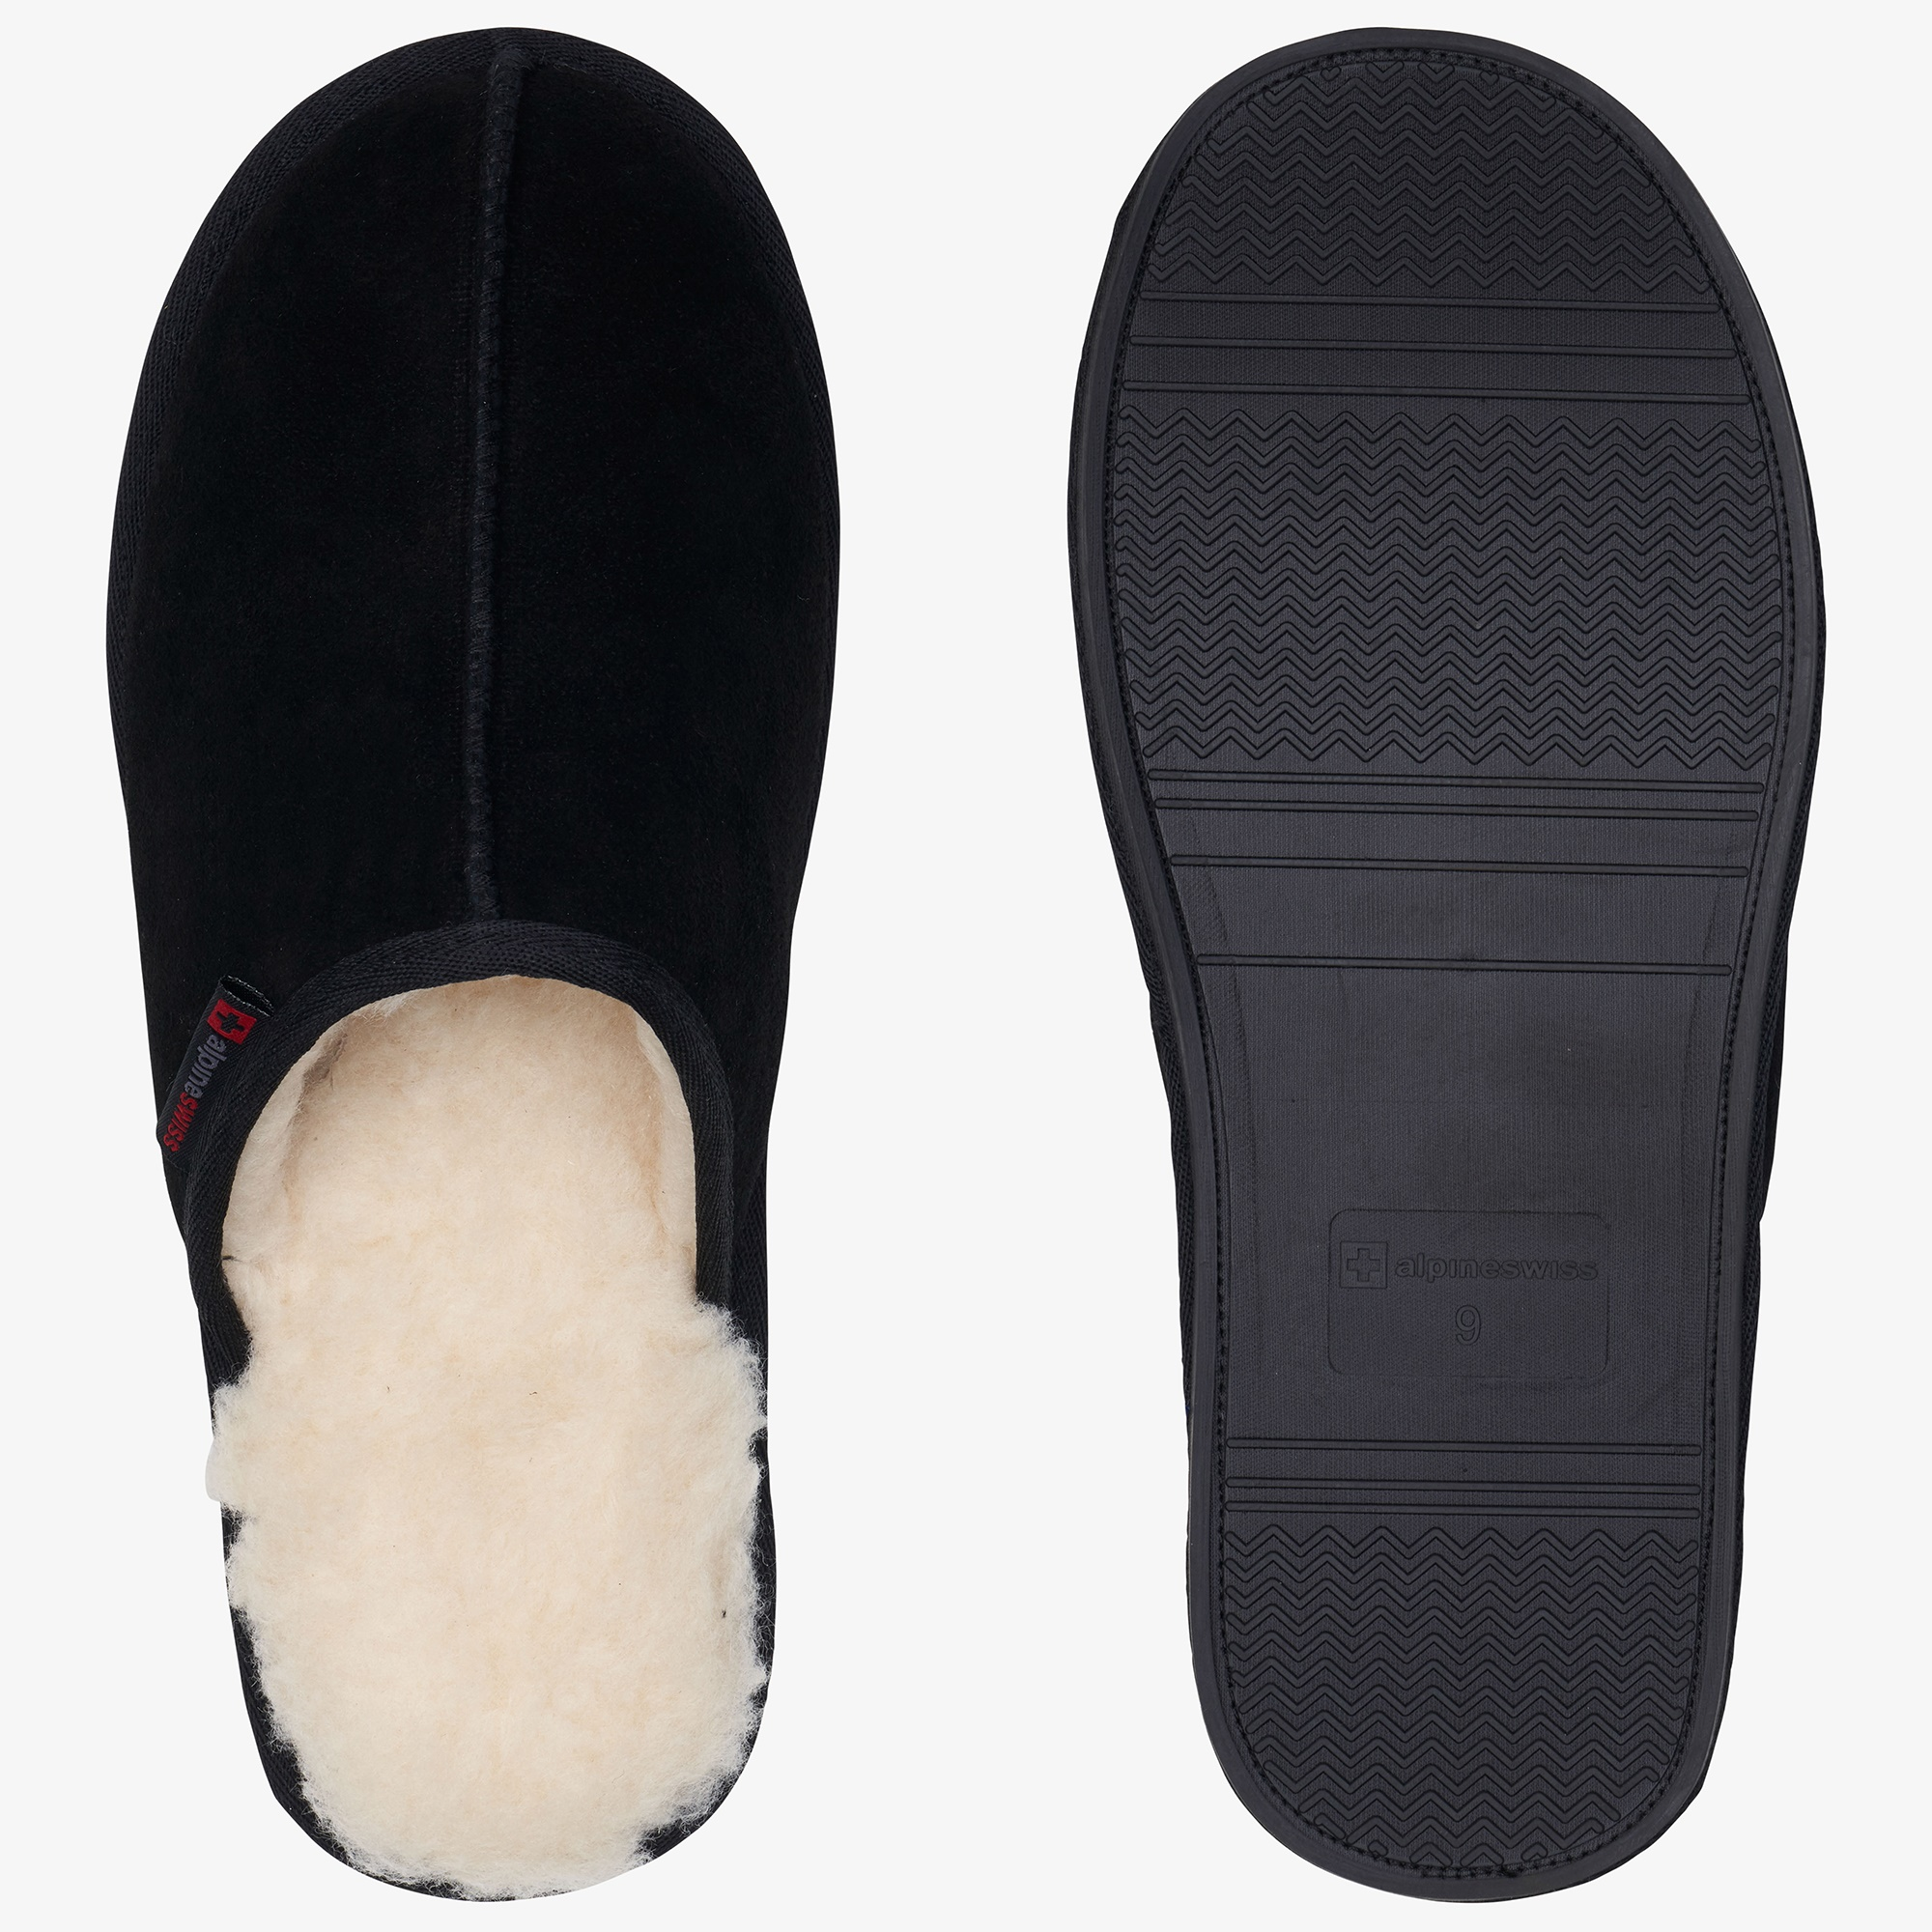 Alpine-Swiss-Mens-Suede-Memory-Foam-Scuff-Slippers-Comfort-Slip-On-House-Shoes thumbnail 15